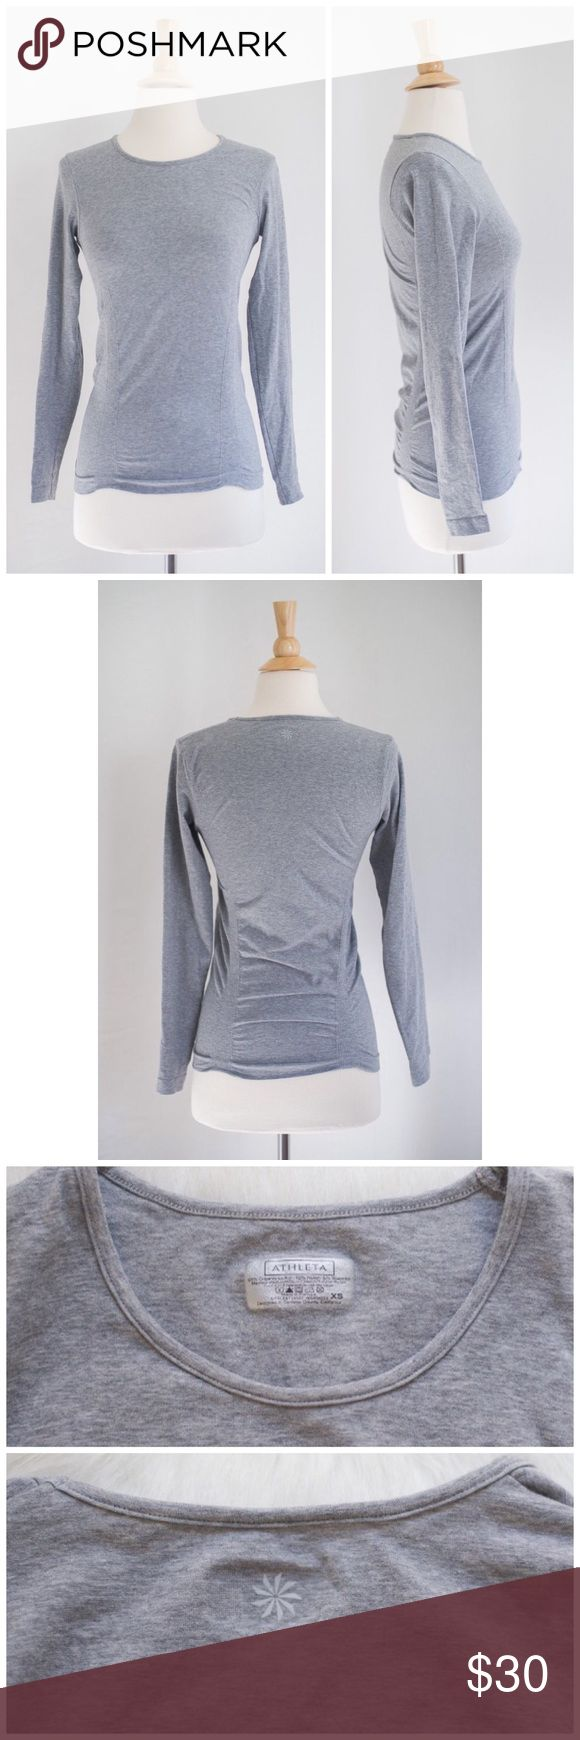 Athleta Fastest Track Long Sleeve Top Excellent, pre-owned condition.  No flaws.  85% Organic Cotton, 10% Nylon, 5% Spandex.  Color: Heathered Grey.  Your favorite, go-to training top for high-intensity sweat sessions has our best technologies: Unstinkable, Regul8, and chafe-free seamless fabric. 	•	INSPIRED FOR: run, gym/training, studio workouts 	•	Raglan sleeves give you room to move 	•	Shirring along the sides is fit to flatter 	•	Gripper dots along hem stop it from riding up Athleta…